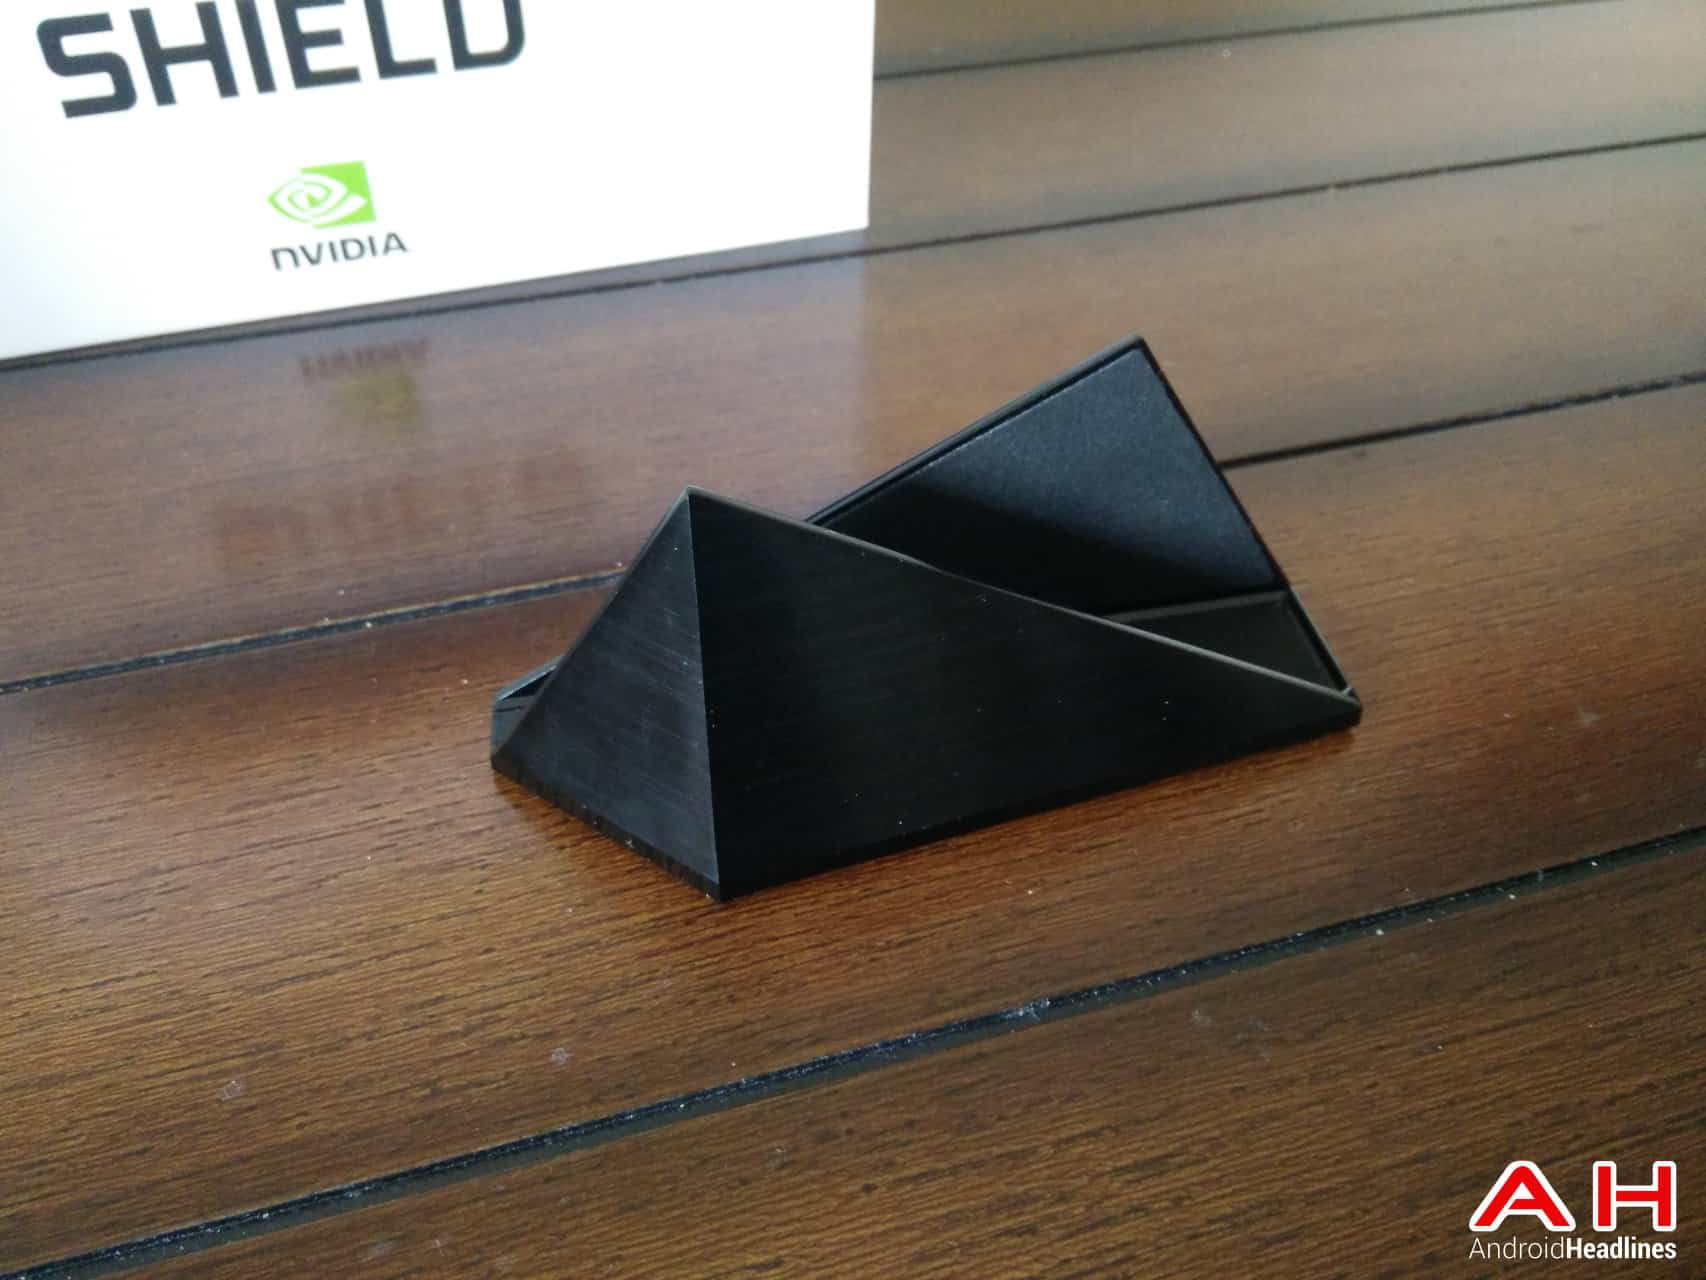 NVIDIA SHIELD AH 121